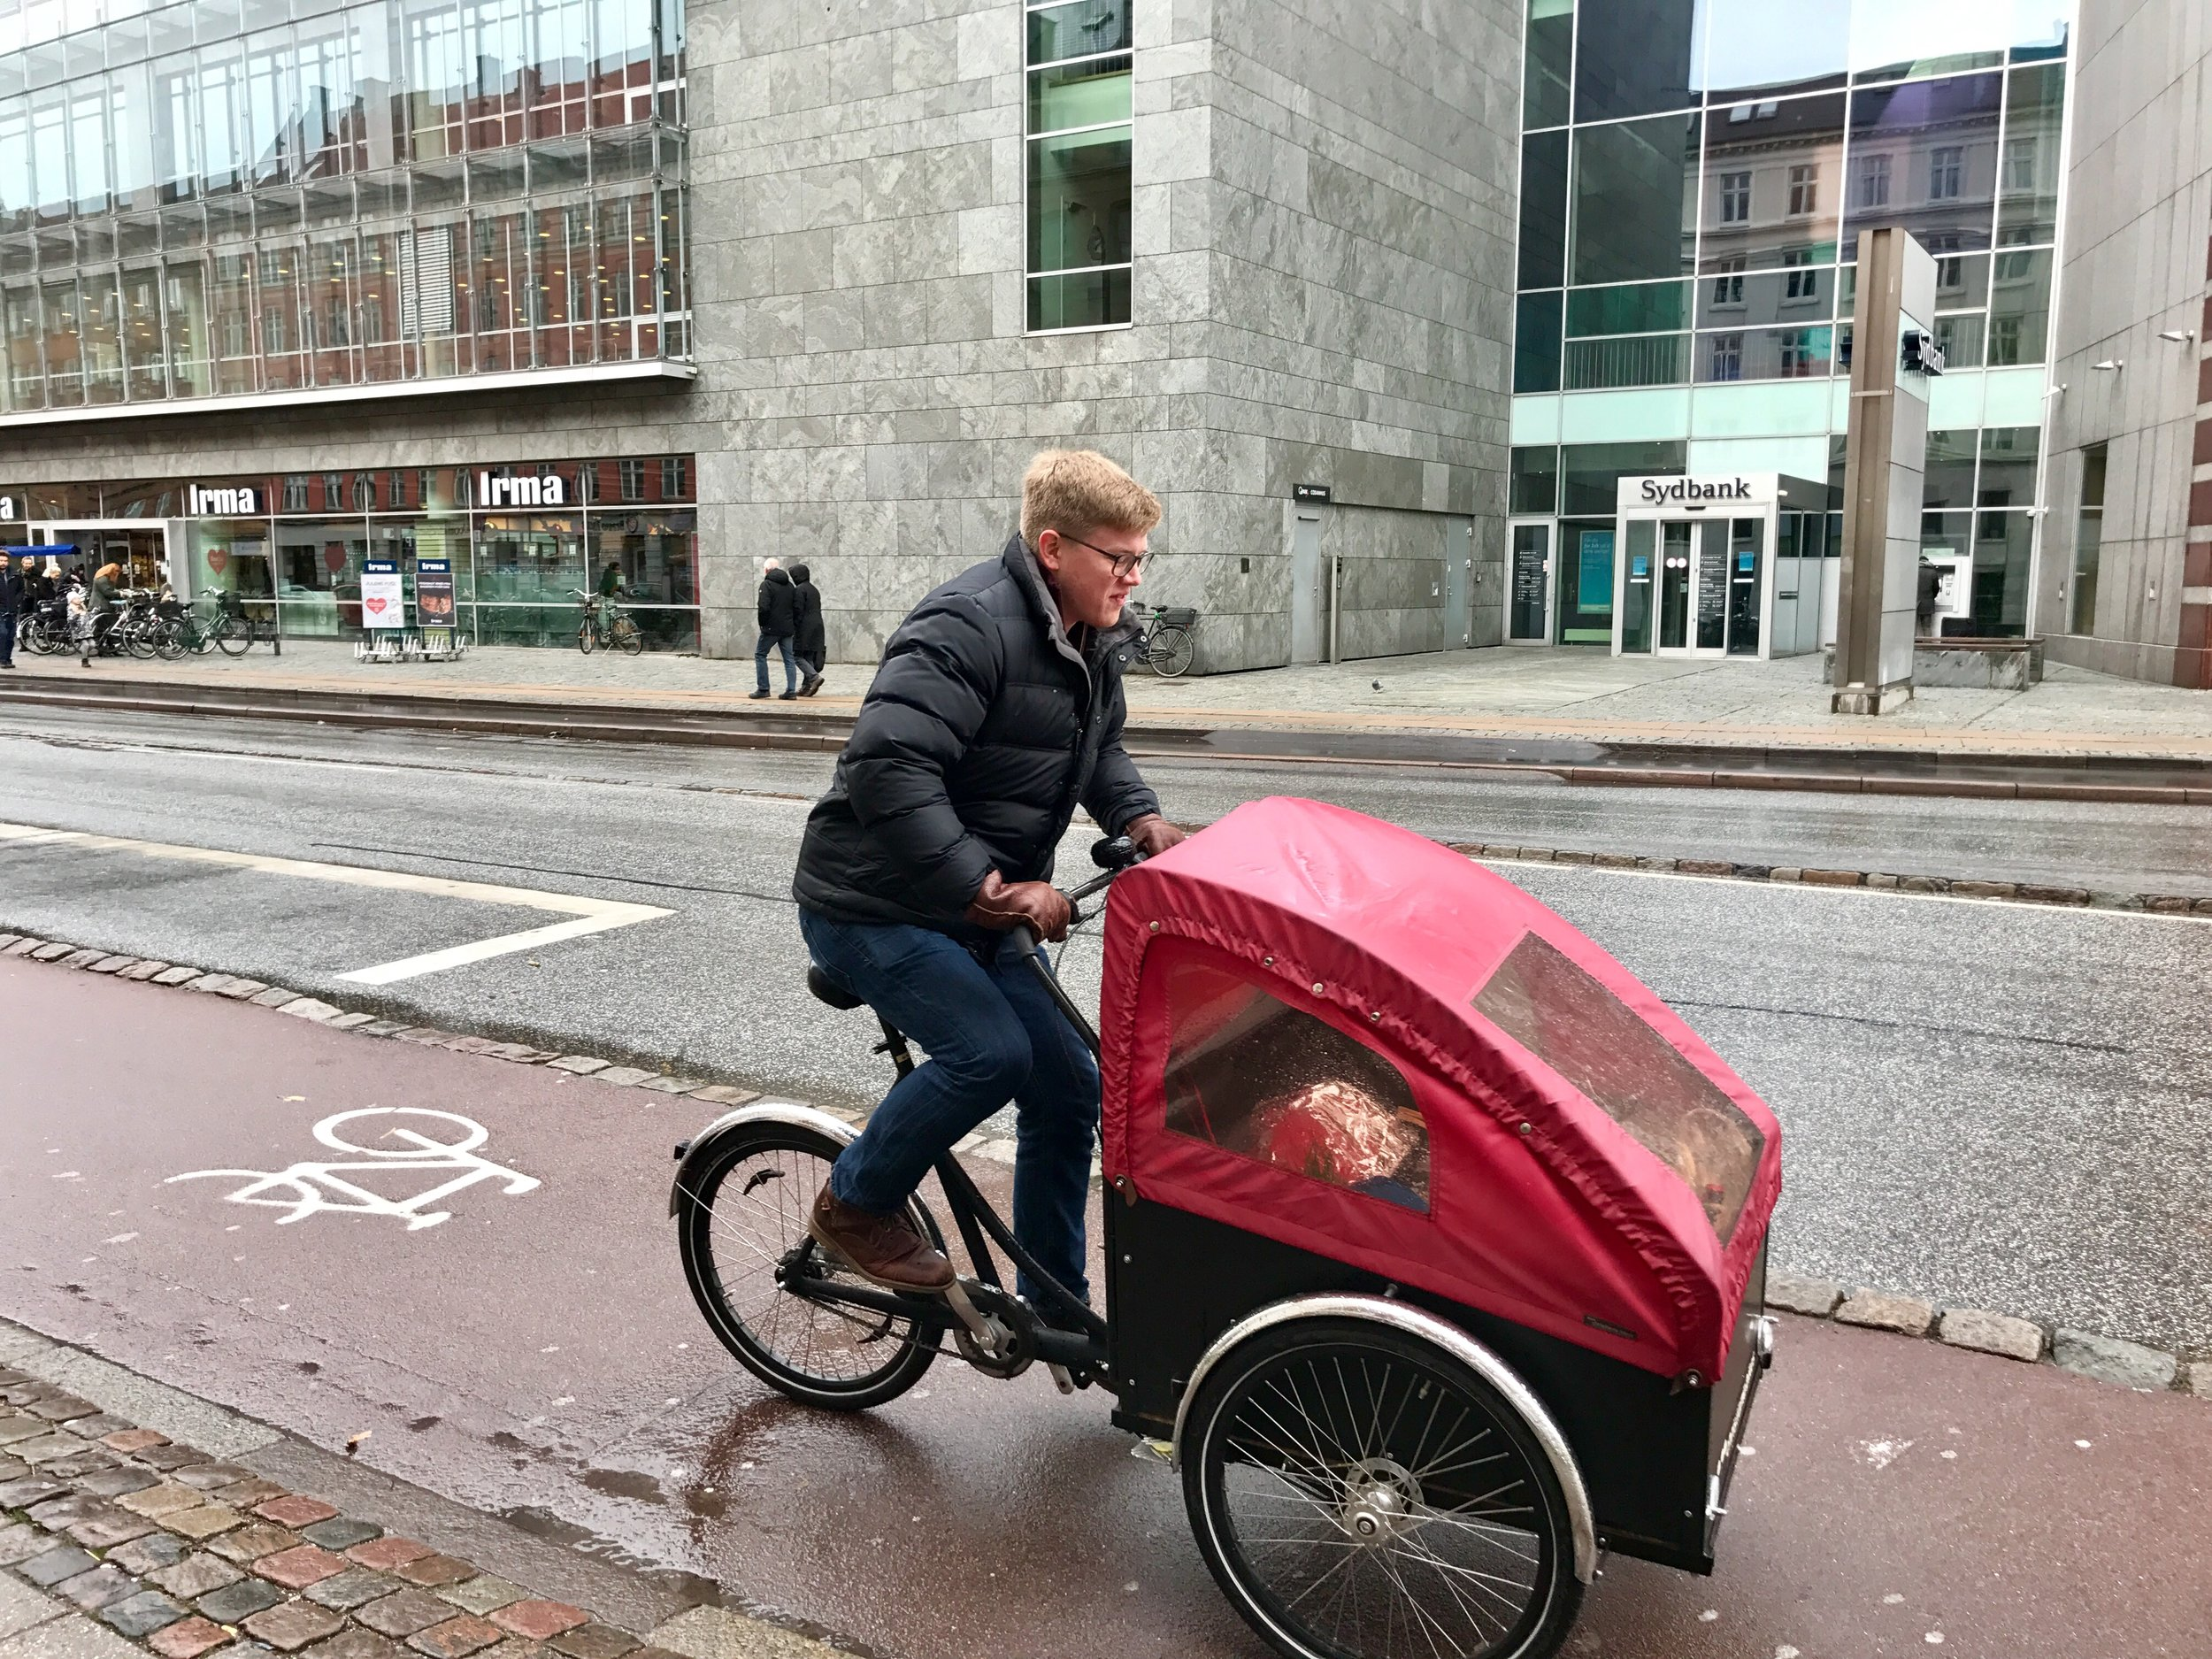 Sam transporting the Thanksgiving meal, including a pre-ordered turkey to the party on a Christiania bike